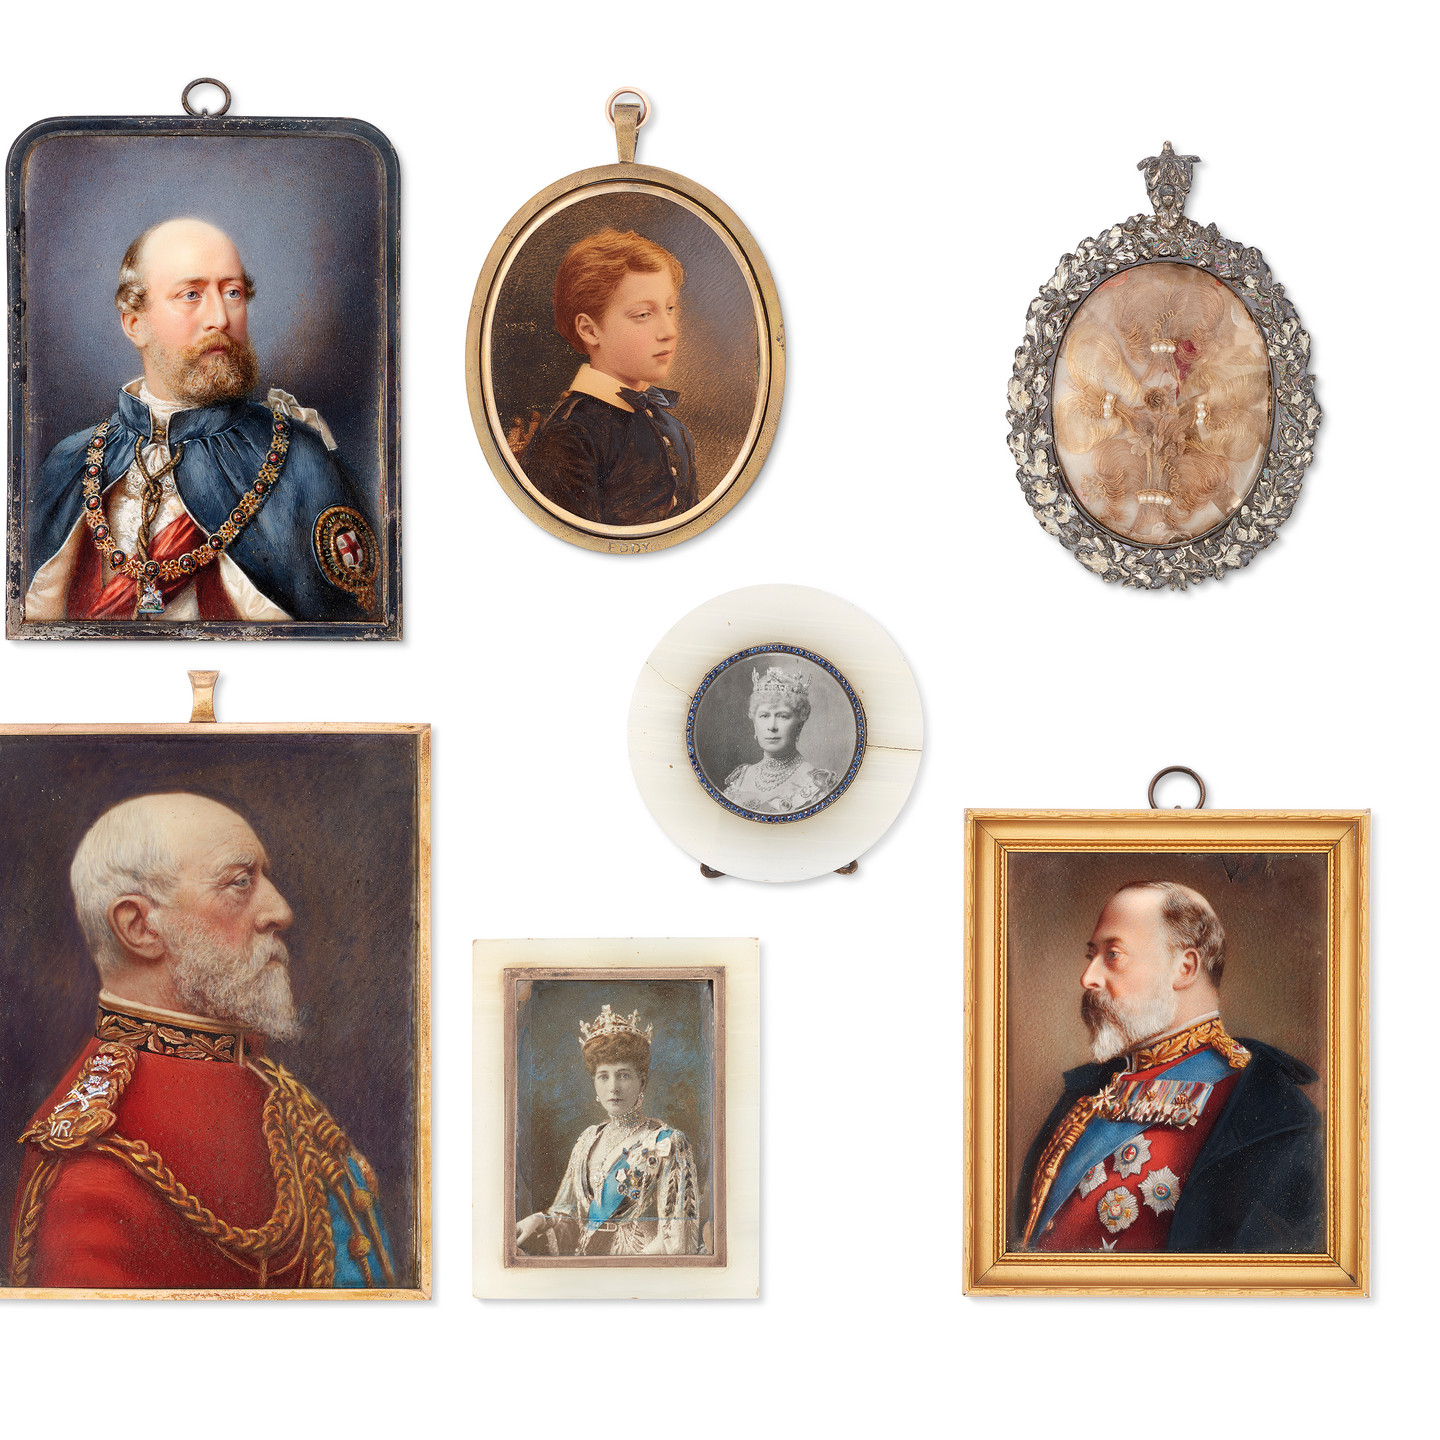 A GROUP OF SEVEN PORTRAIT MINIATURES OF ROYAL SITTERS King Edward VII (1841-1910), in semi-profile to the left, wearing red coat and orders (English School, 19th century. On ivory); the same sitter in profile to the right (English School, 19th century. On ivory); Prince Christian of Schleswig-Holsten (1831-1917), wearing the robes of the Order of the Garter (by William Thompson Barber, fl. c. 1876-1885, signed 'WT Barber' and indistinctly signed, lower right. On ivory); Edward VIII as a boy (by William and Daniel Downey, active 1855-1941. On card); Queen Mary (1867-1953) (English School, early 20th century, on a photographic card base); Queen Alexandra (1844-1925), dressed for the Connaught-Fife wedding (English School, circa 1913. On a photographic card base); a plated silver frame containing four locks of hair (18th century, the plated surround later) Some on ivory, some on card Oval and rectangular, 35 to 120 mm. high, framed